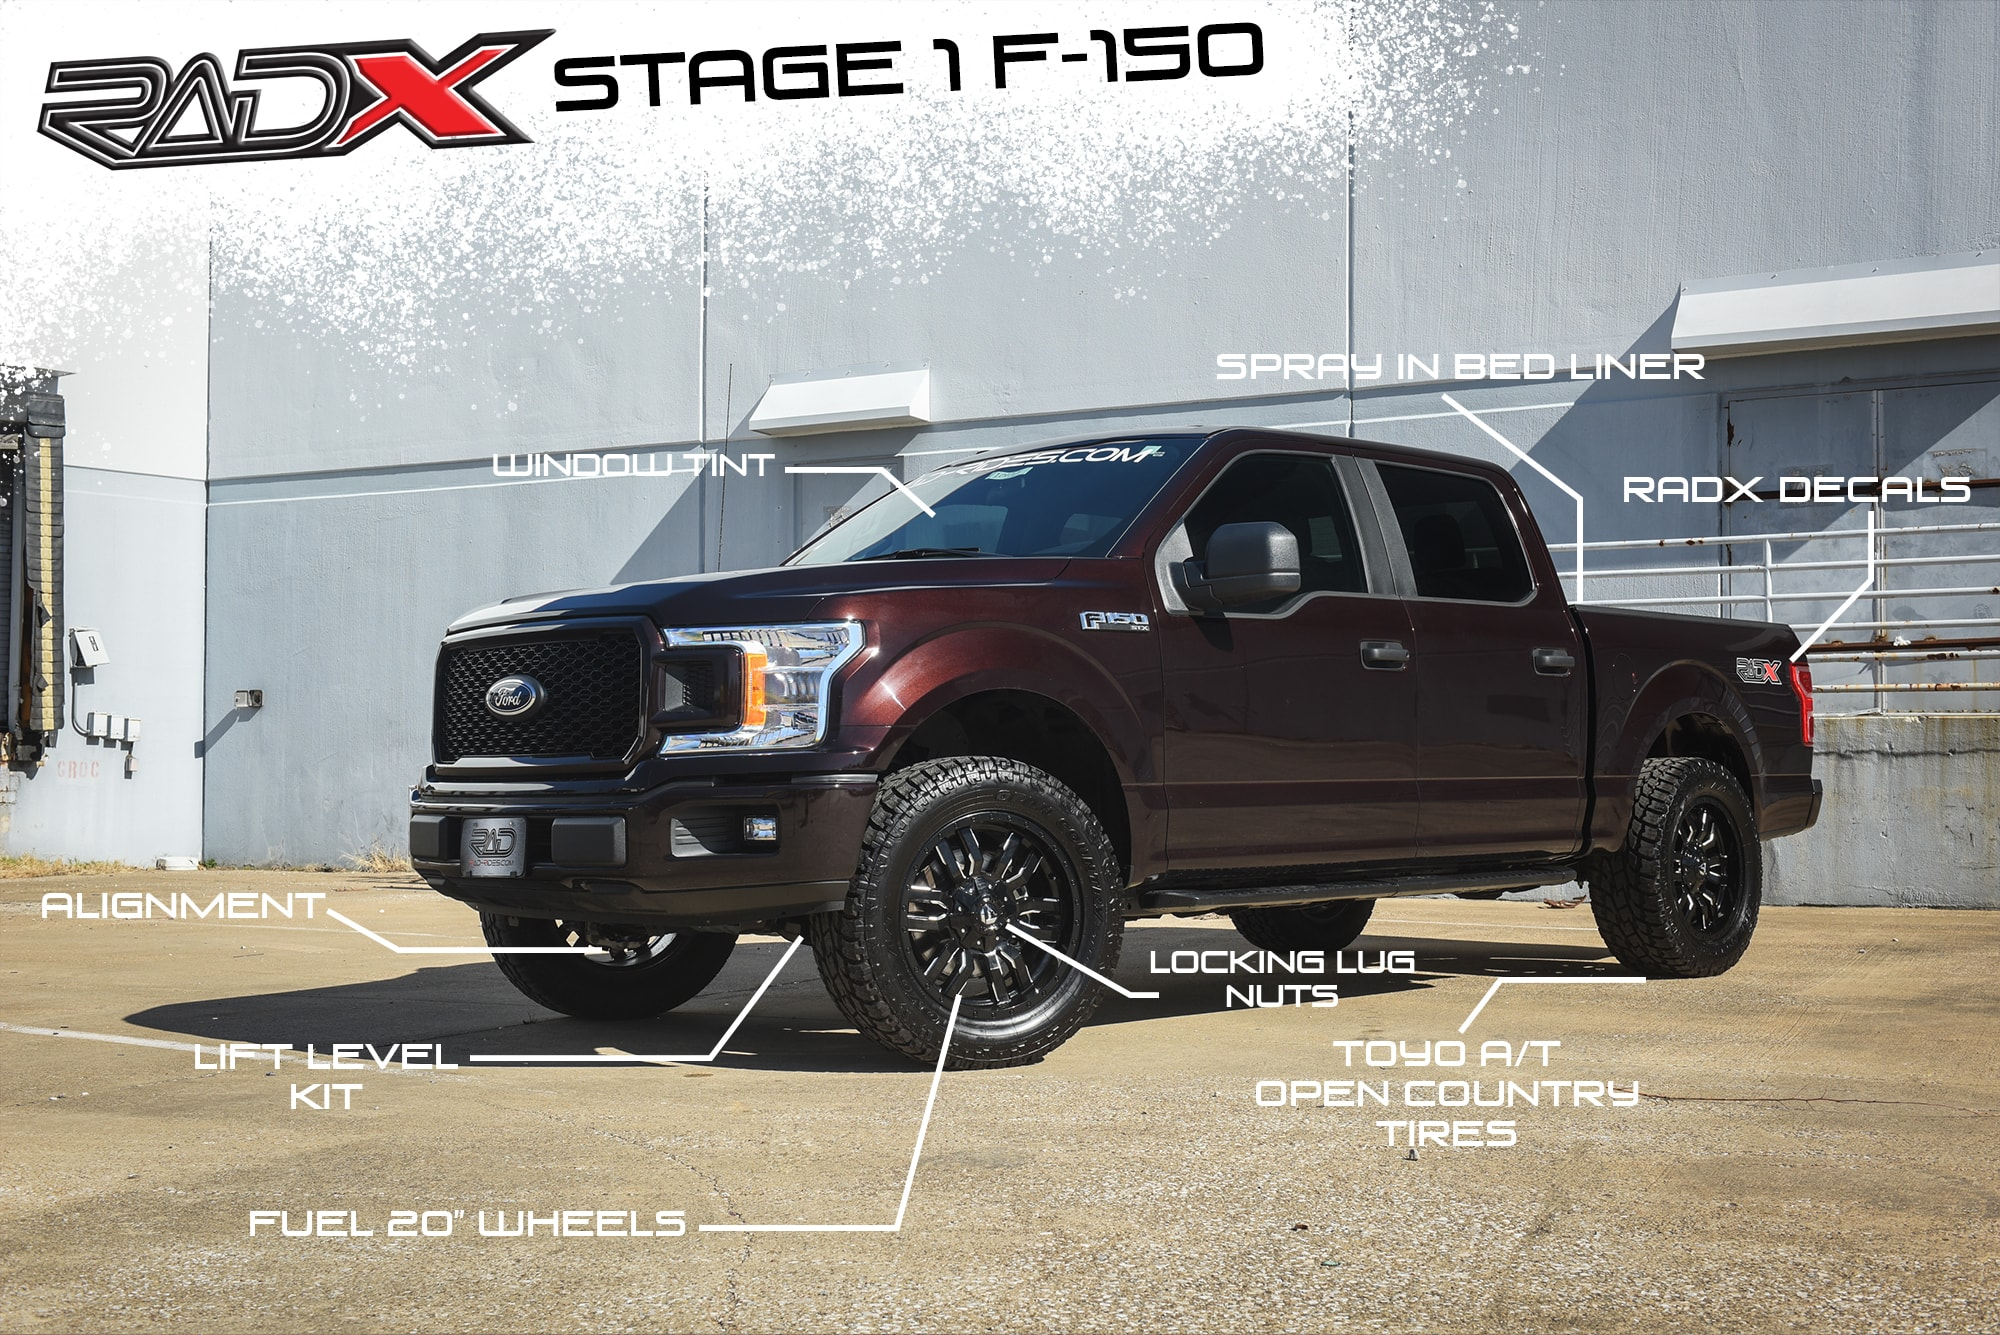 Rad Truck Packages For 4x4 And 2wd Trucks Lift Kits And Wheels And Off Road Tires